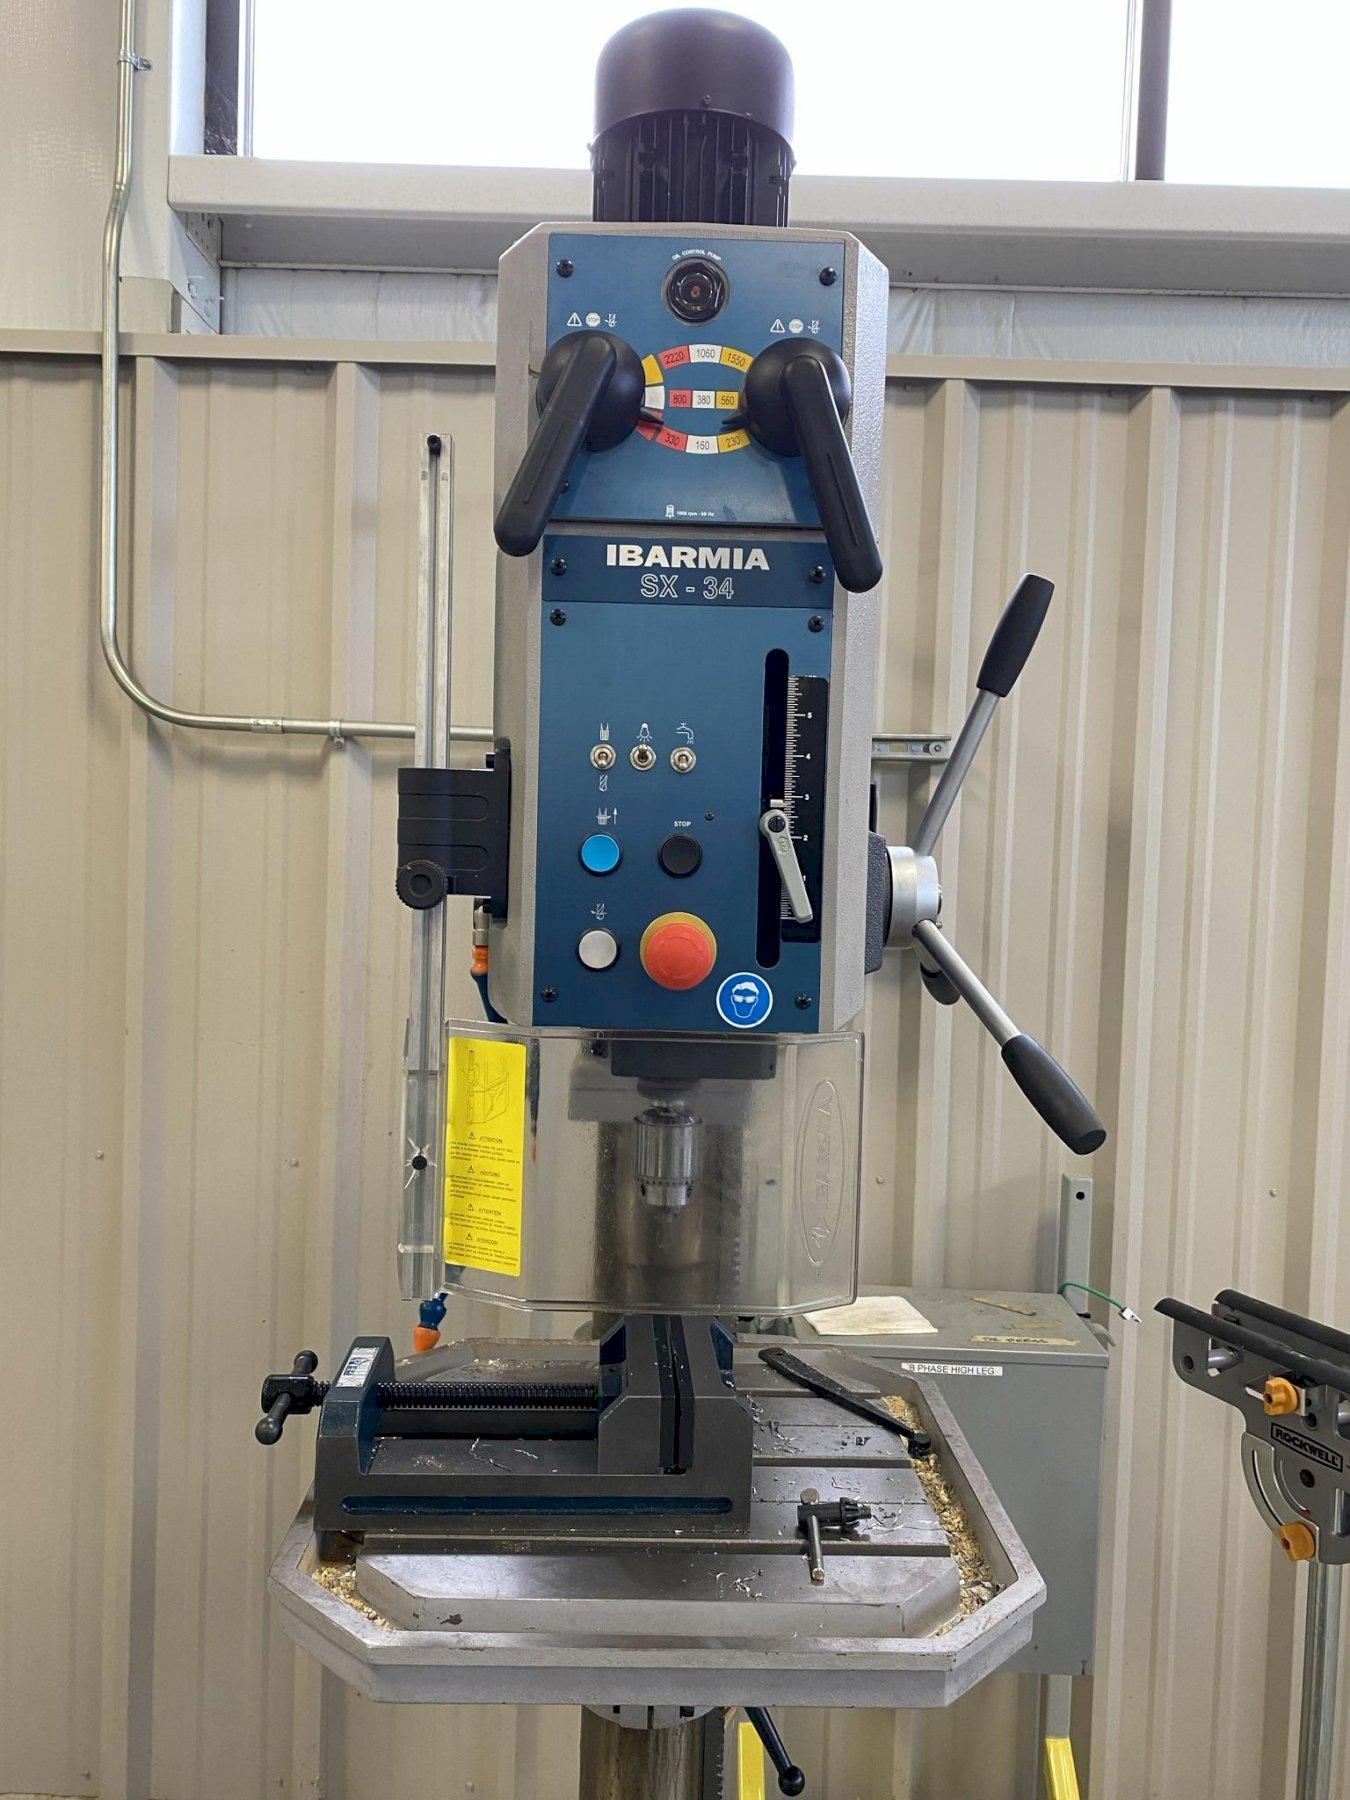 USED CLAUSING IBARMIA GEAR HEAD FLOOR STANDING DRILL PRESS MODEL SX34, Year: 2011, Stock# 10840